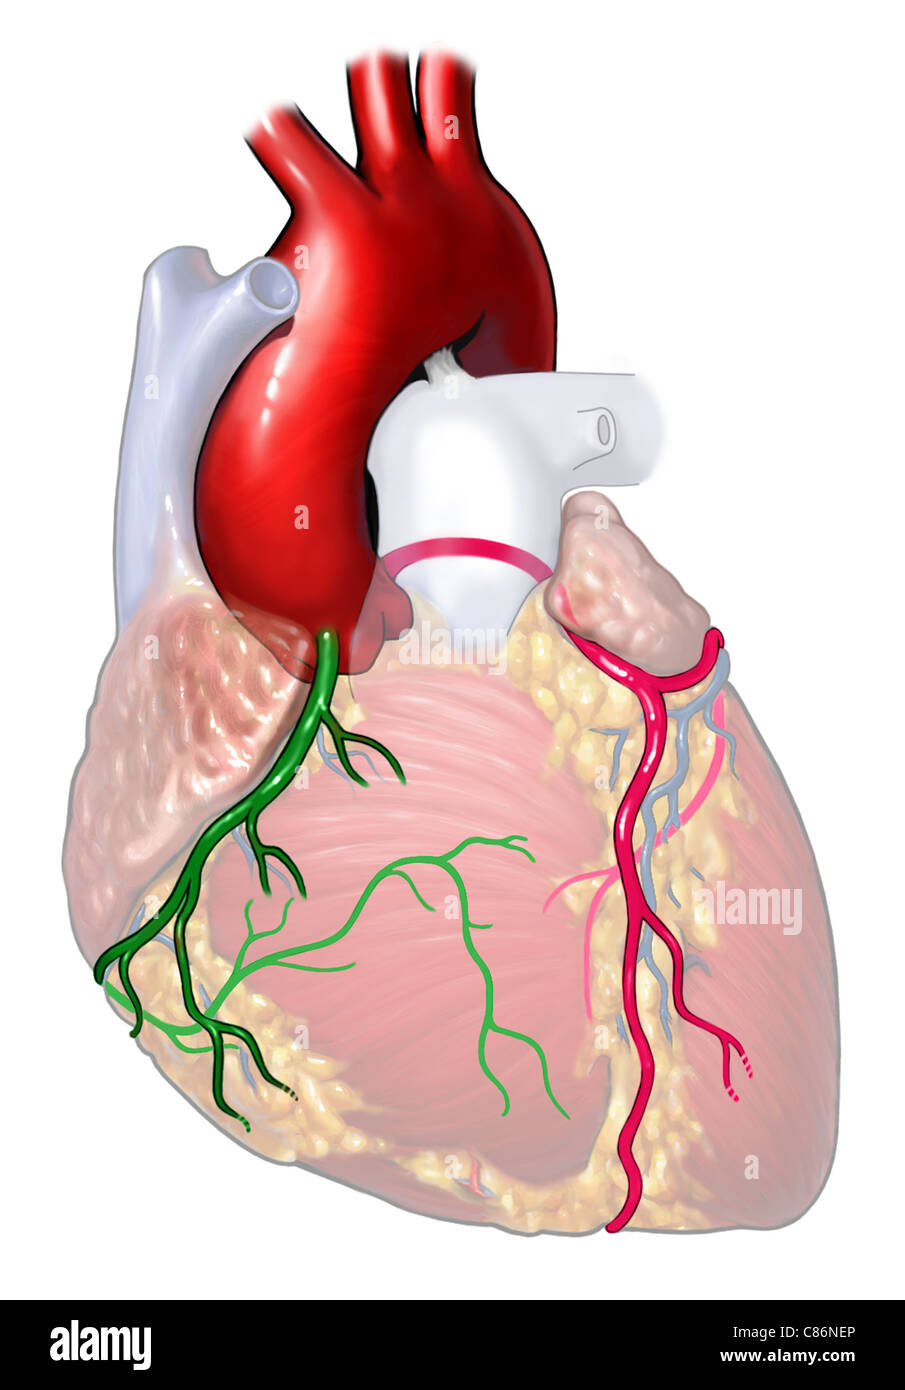 Normal Coronary Arteries Stock Photo: 39486574 - Alamy